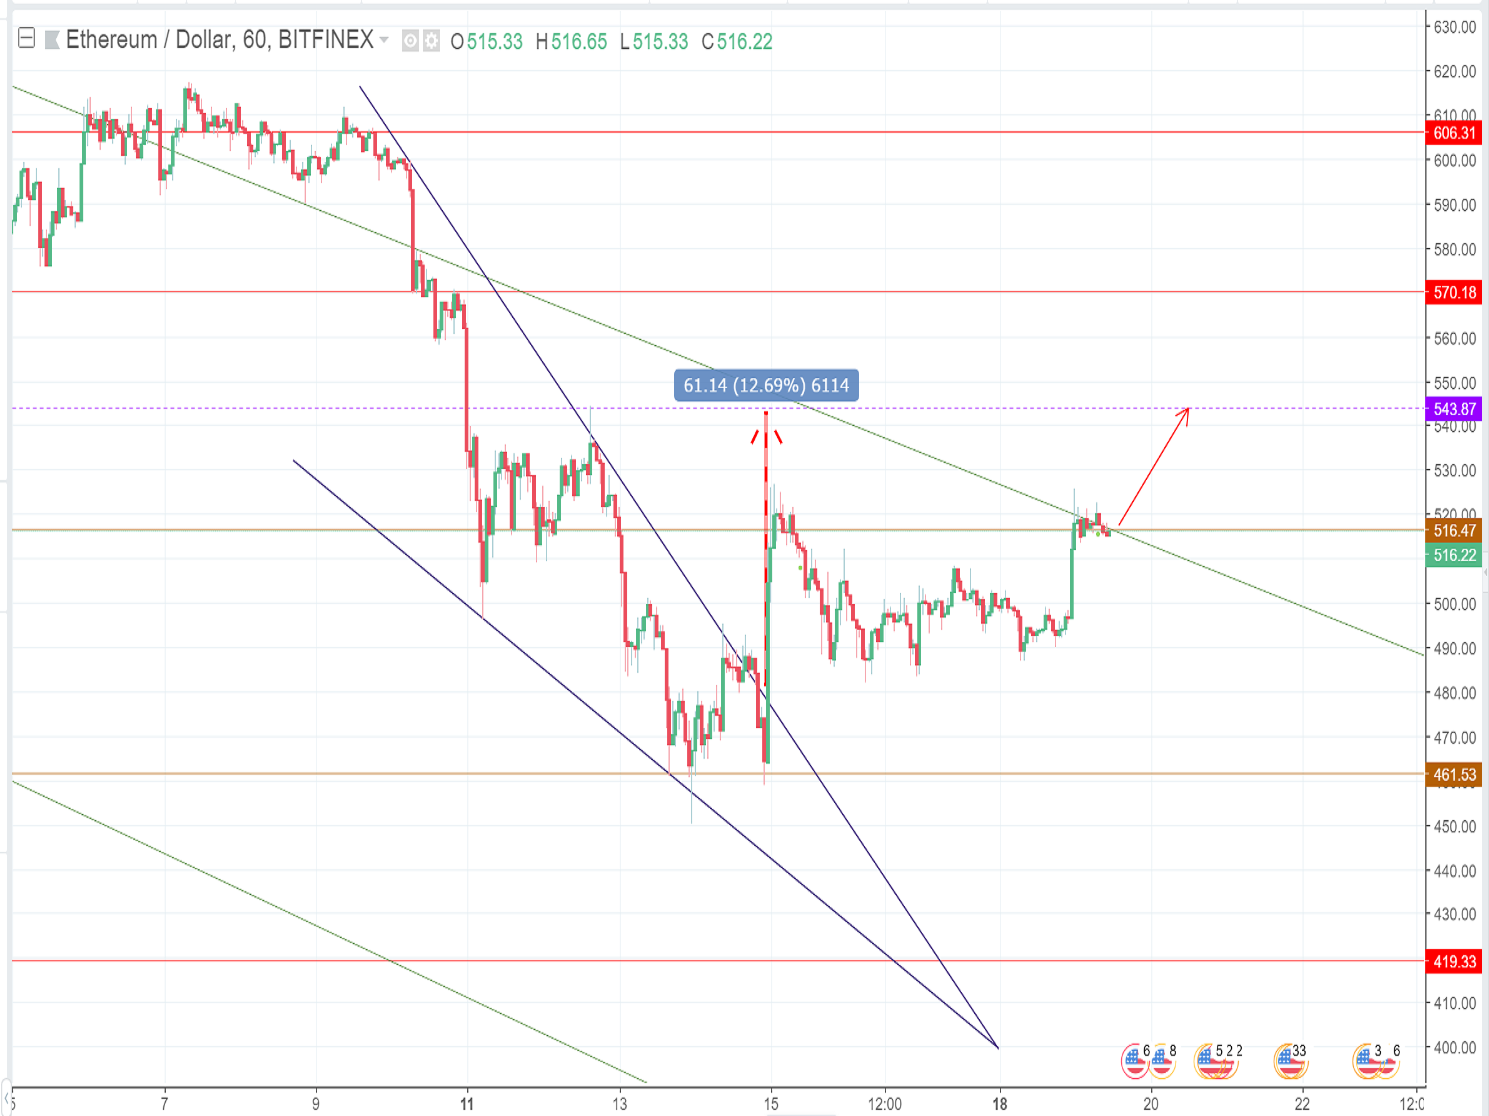 Ethereum price forecast (June 19th): A continuing bullish trend is awaiting ahead